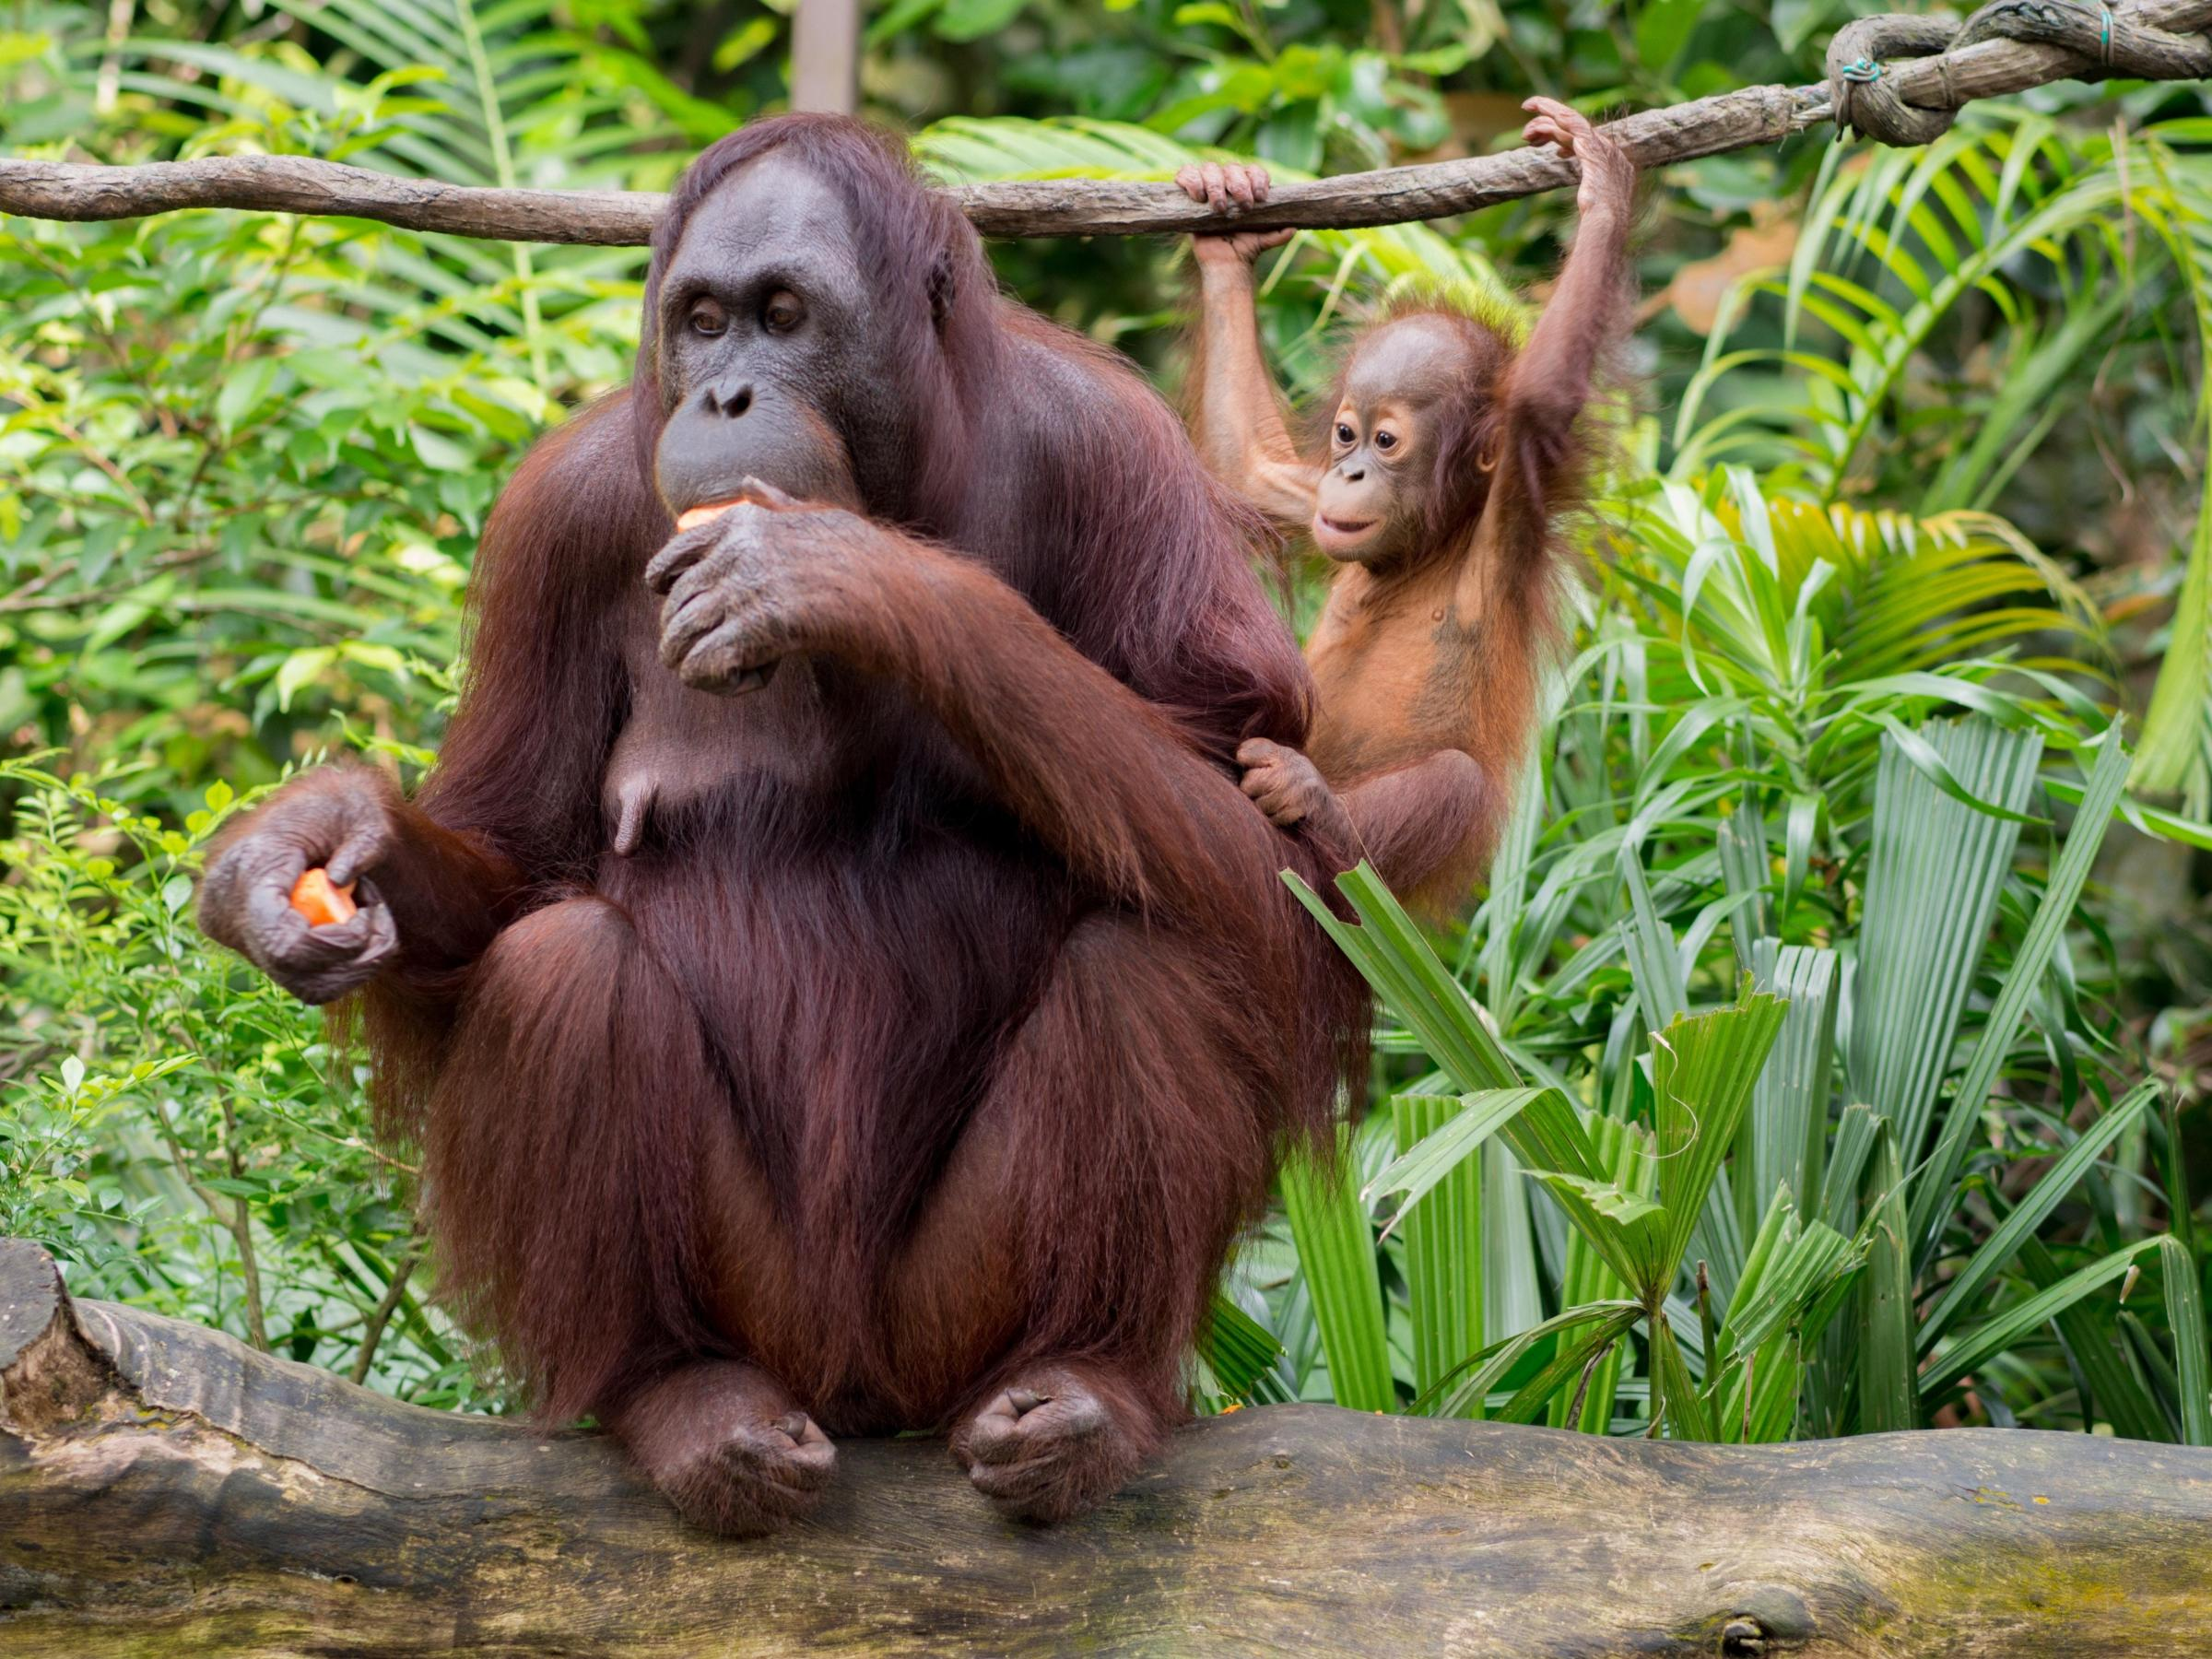 Orangutans are highly emotional animals